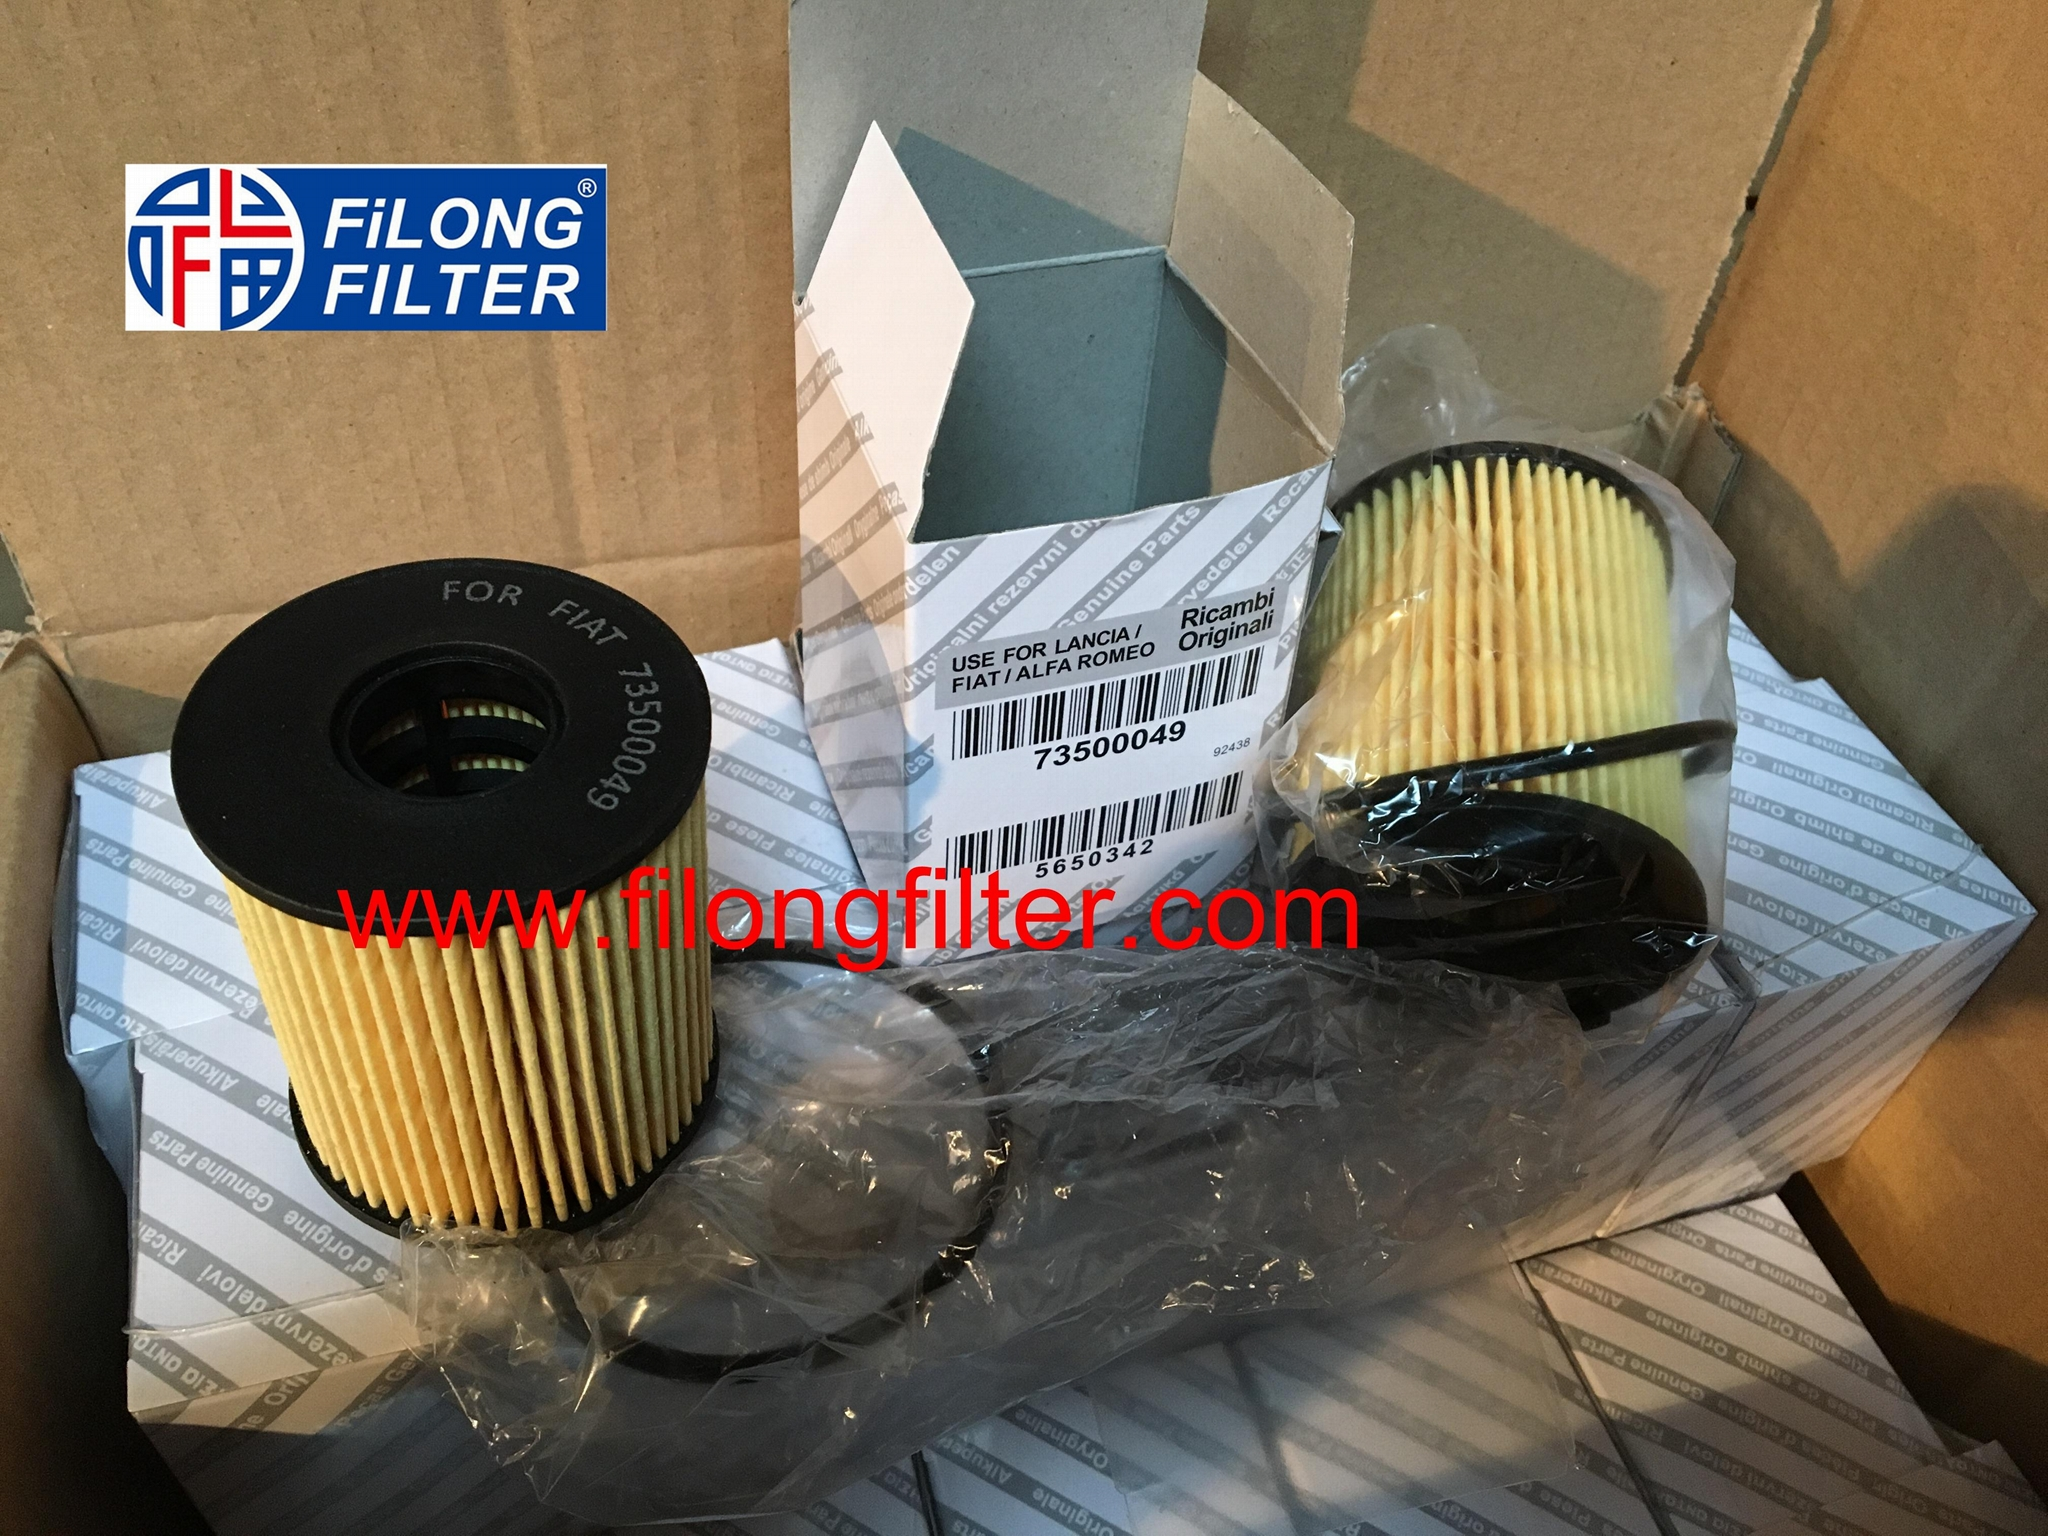 FILONG Manufactory For FIAT Oil filter HU713/1X 6000626333, 71765460, 71773176, 73500049 55245952, 55599959, 93177787, 95516104 5650342, 650190, 650206 	68091826AA, 68091827AA 68094002AA, 71769641 1565248, 9S516731C1A 1651185C00, 1651185C00000, 1651185E00, 1651185E00000 CH9713ECO E60HD110 OX371D, OX371DECO  SH4794P